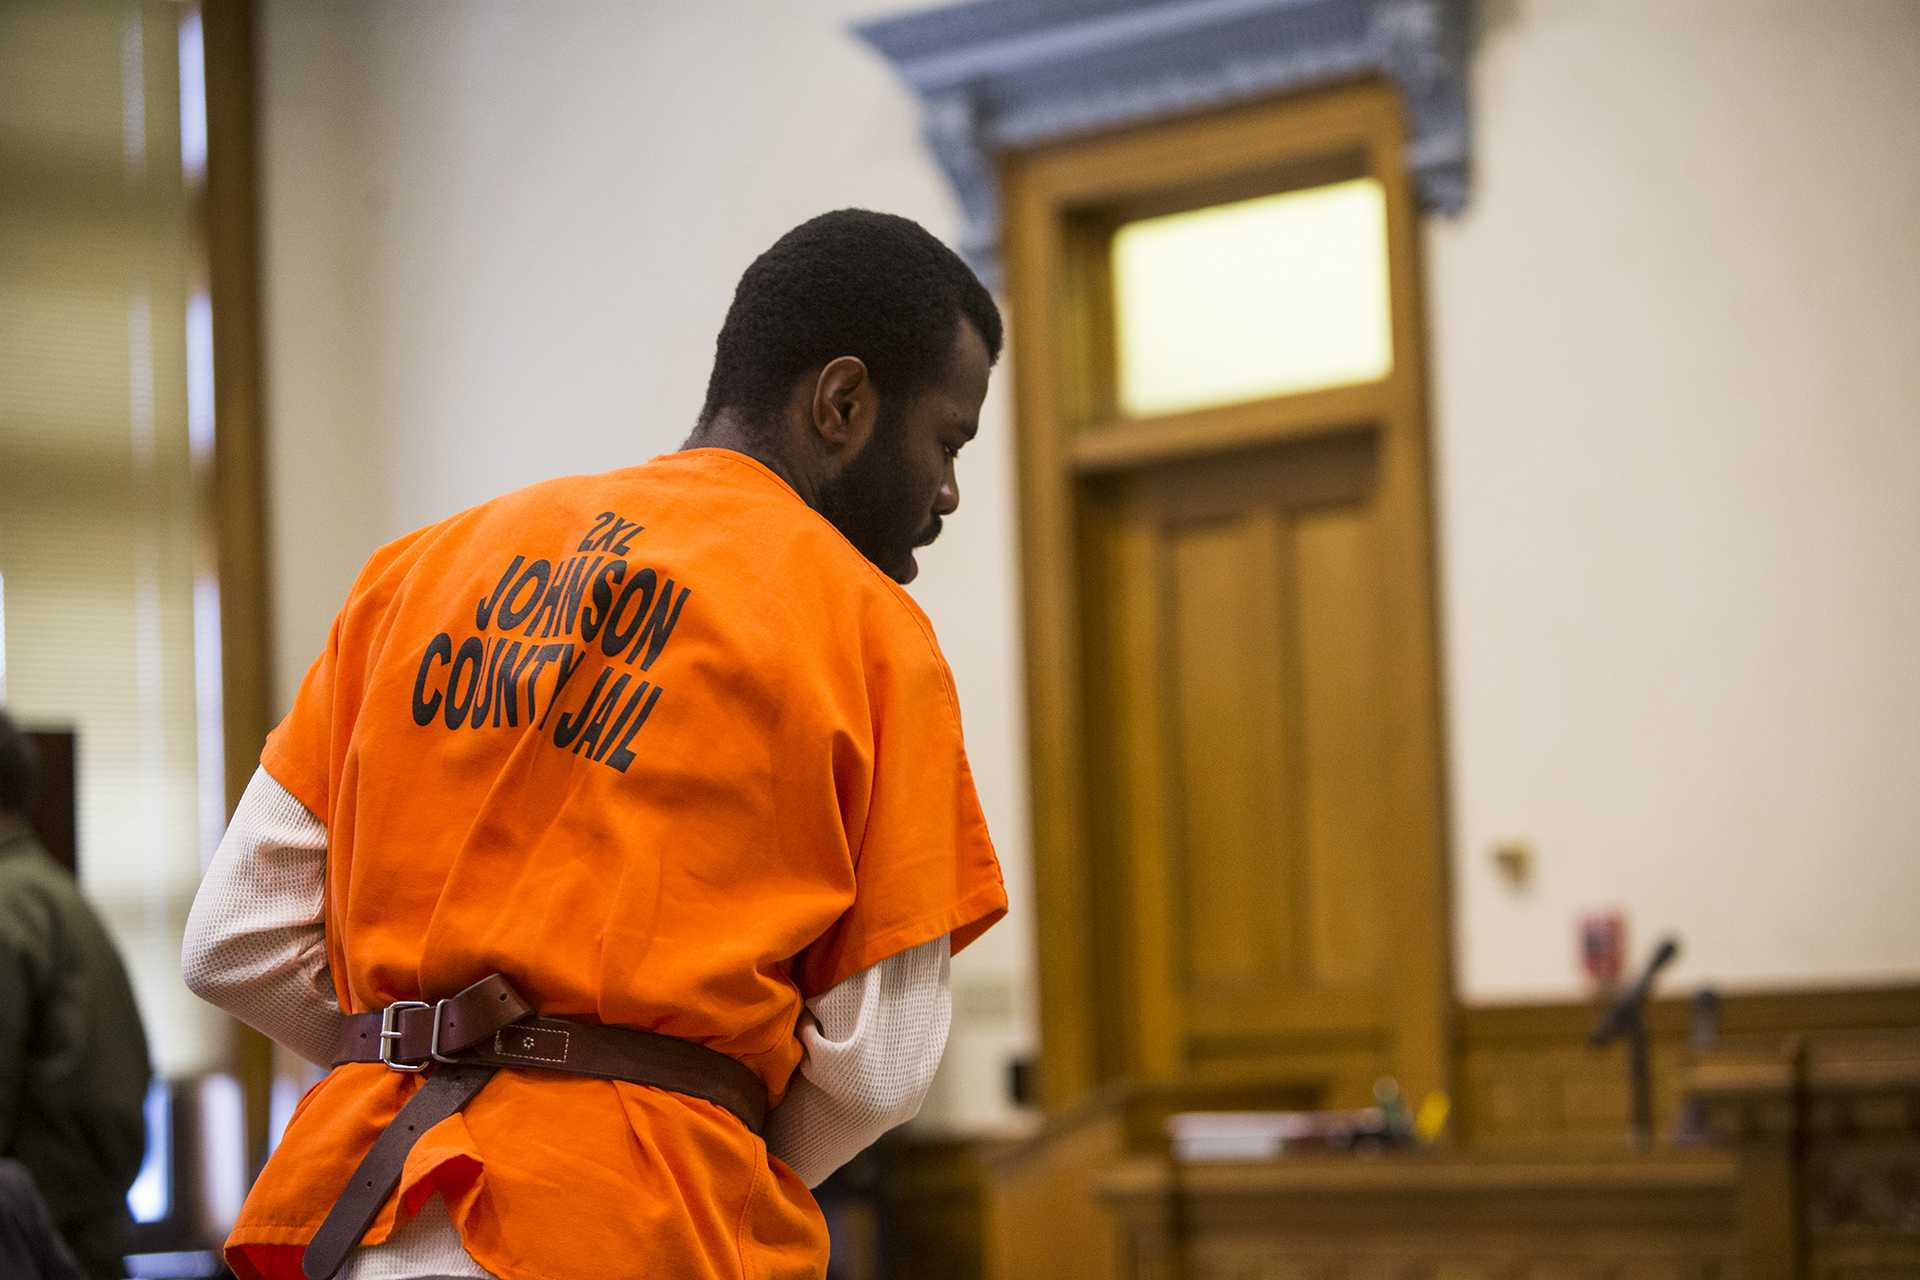 "Lamar Wilson of Iowa City walks into the court room during a case management hearing for Lamar Wilson vs. Johnson County in the Johnson County courthouse on Friday, Oct. 27, 2017. Wilson's lawyers asked the judge to dismiss charges against him using Iowa's ""stand your ground"" defense. (Joseph Cress/The Daily Iowan)"